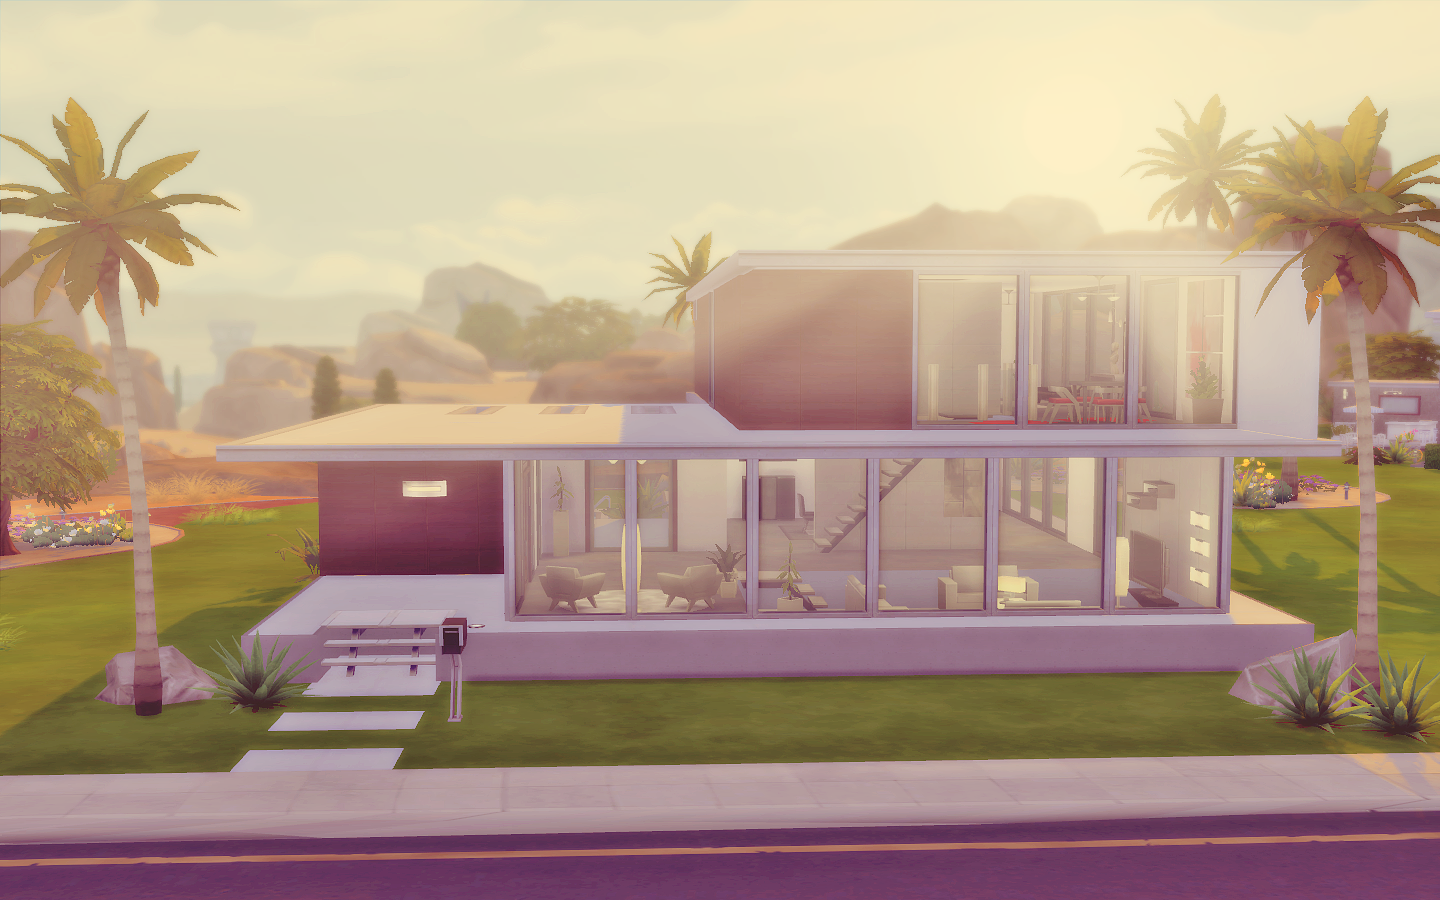 House 06 the sims 4 via sims for Casa moderna sims 3 sin expansiones